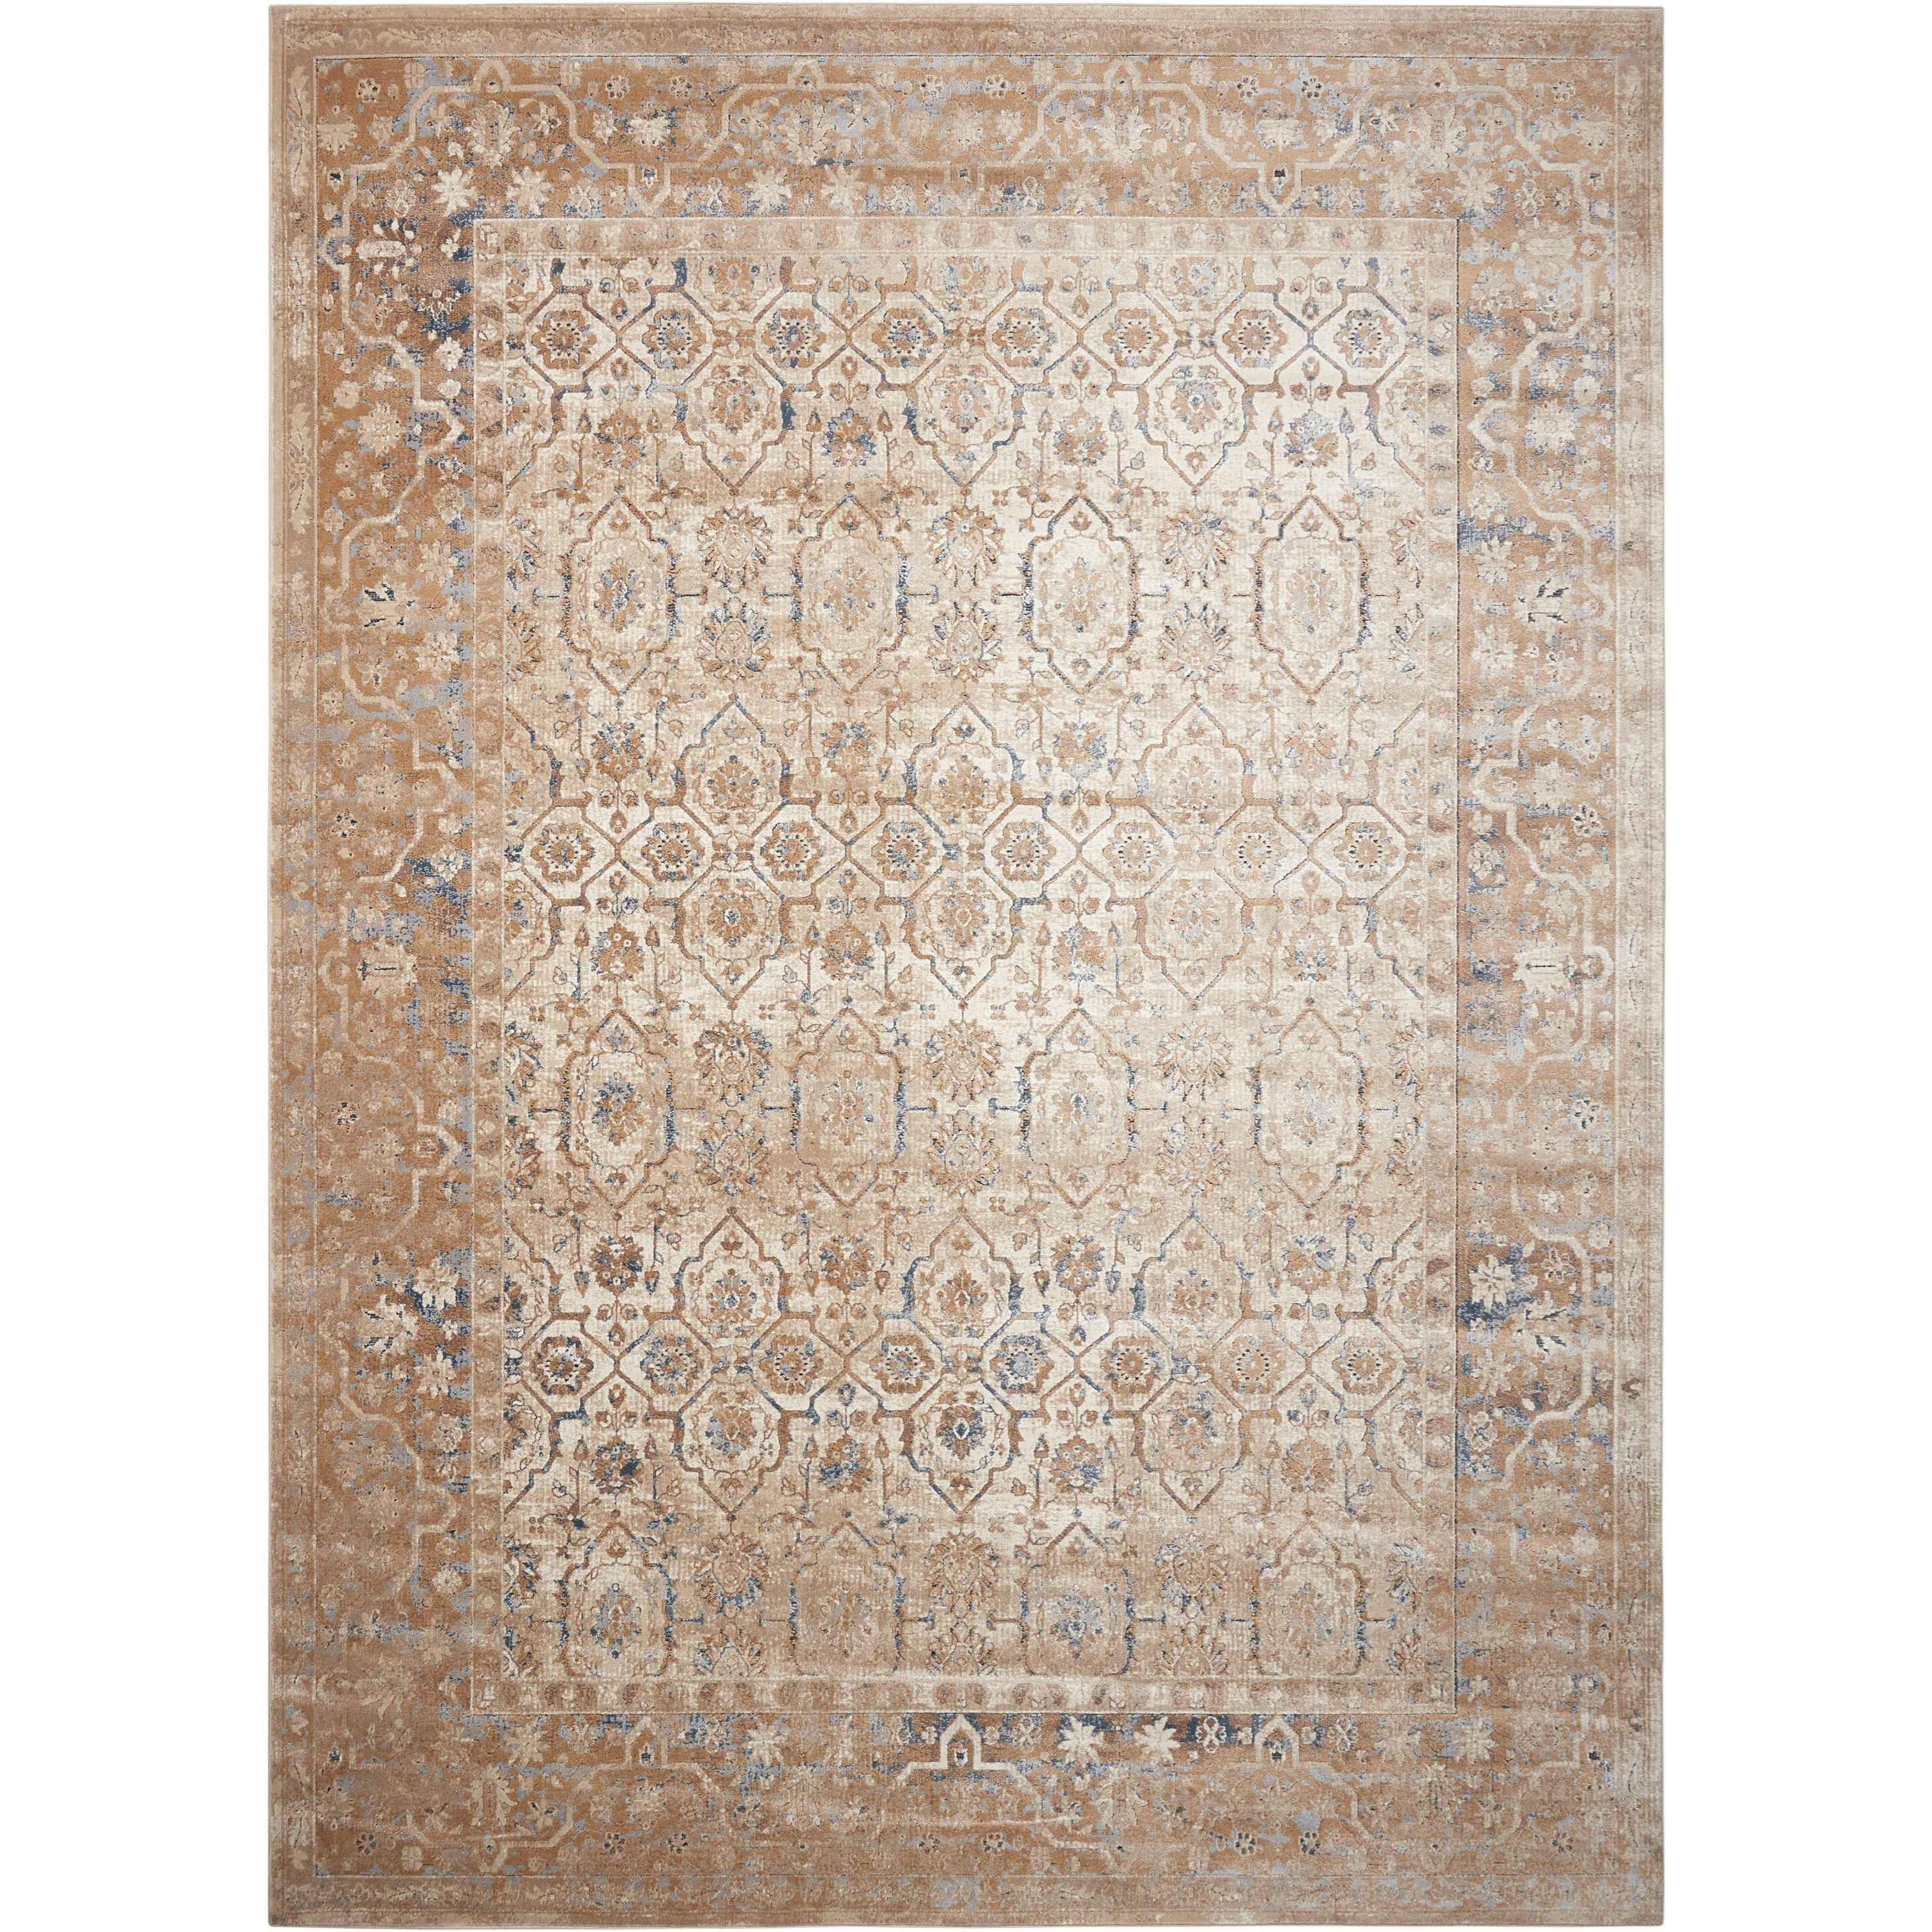 "Malta 7'10"" x 10'10"" Rug by kathy ireland Home by Nourison at Home Collections Furniture"